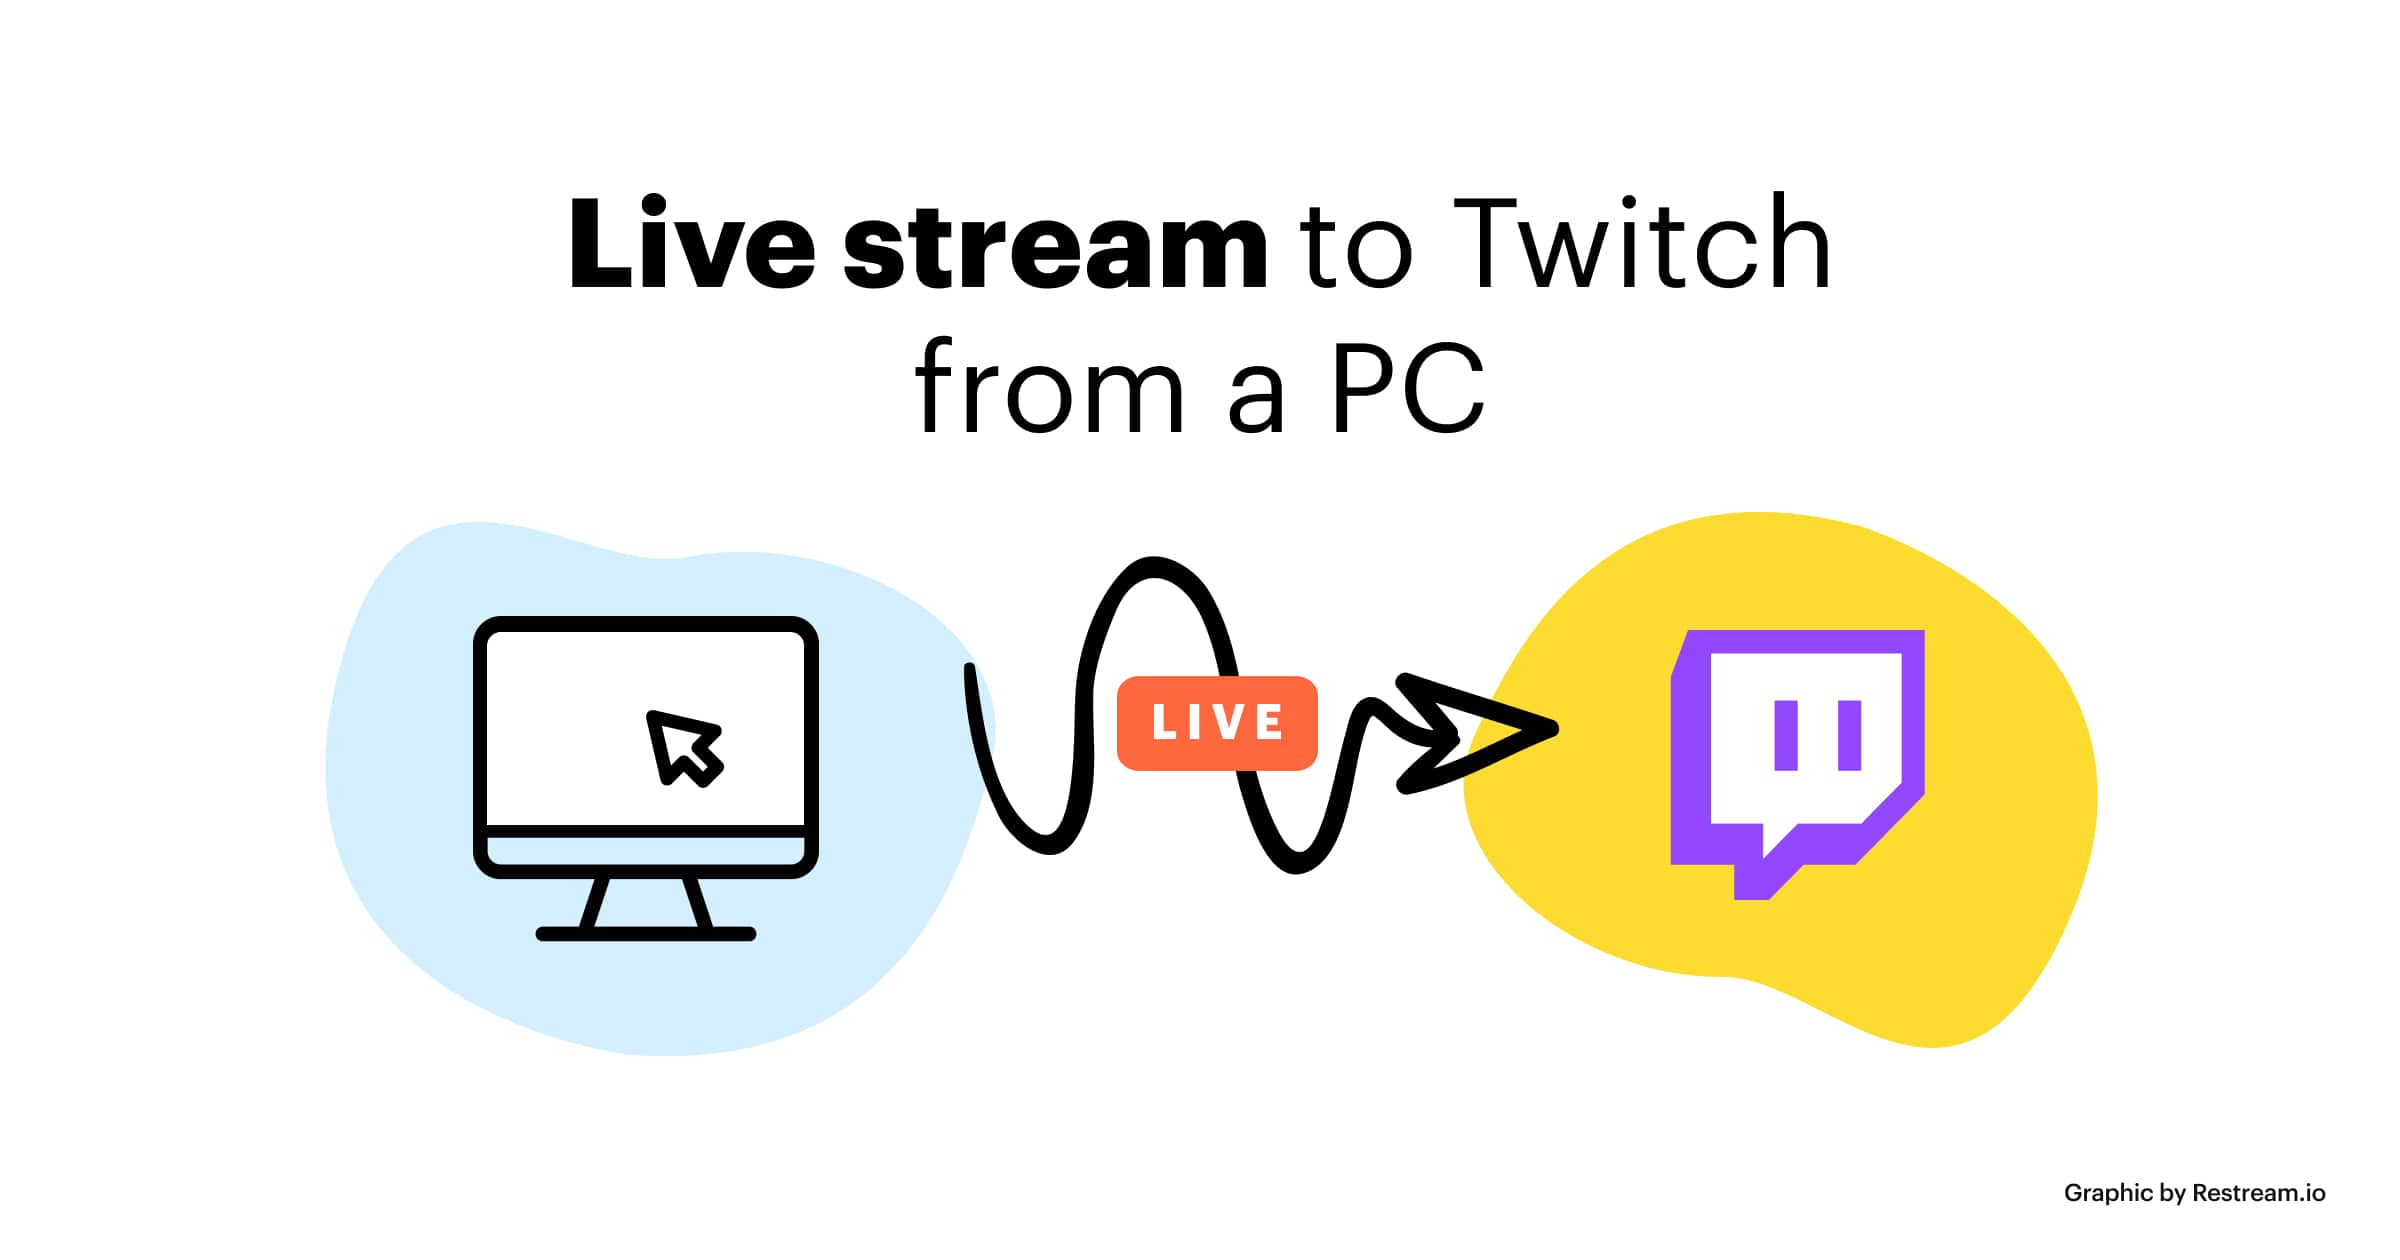 Live stream to Twitch from a PC